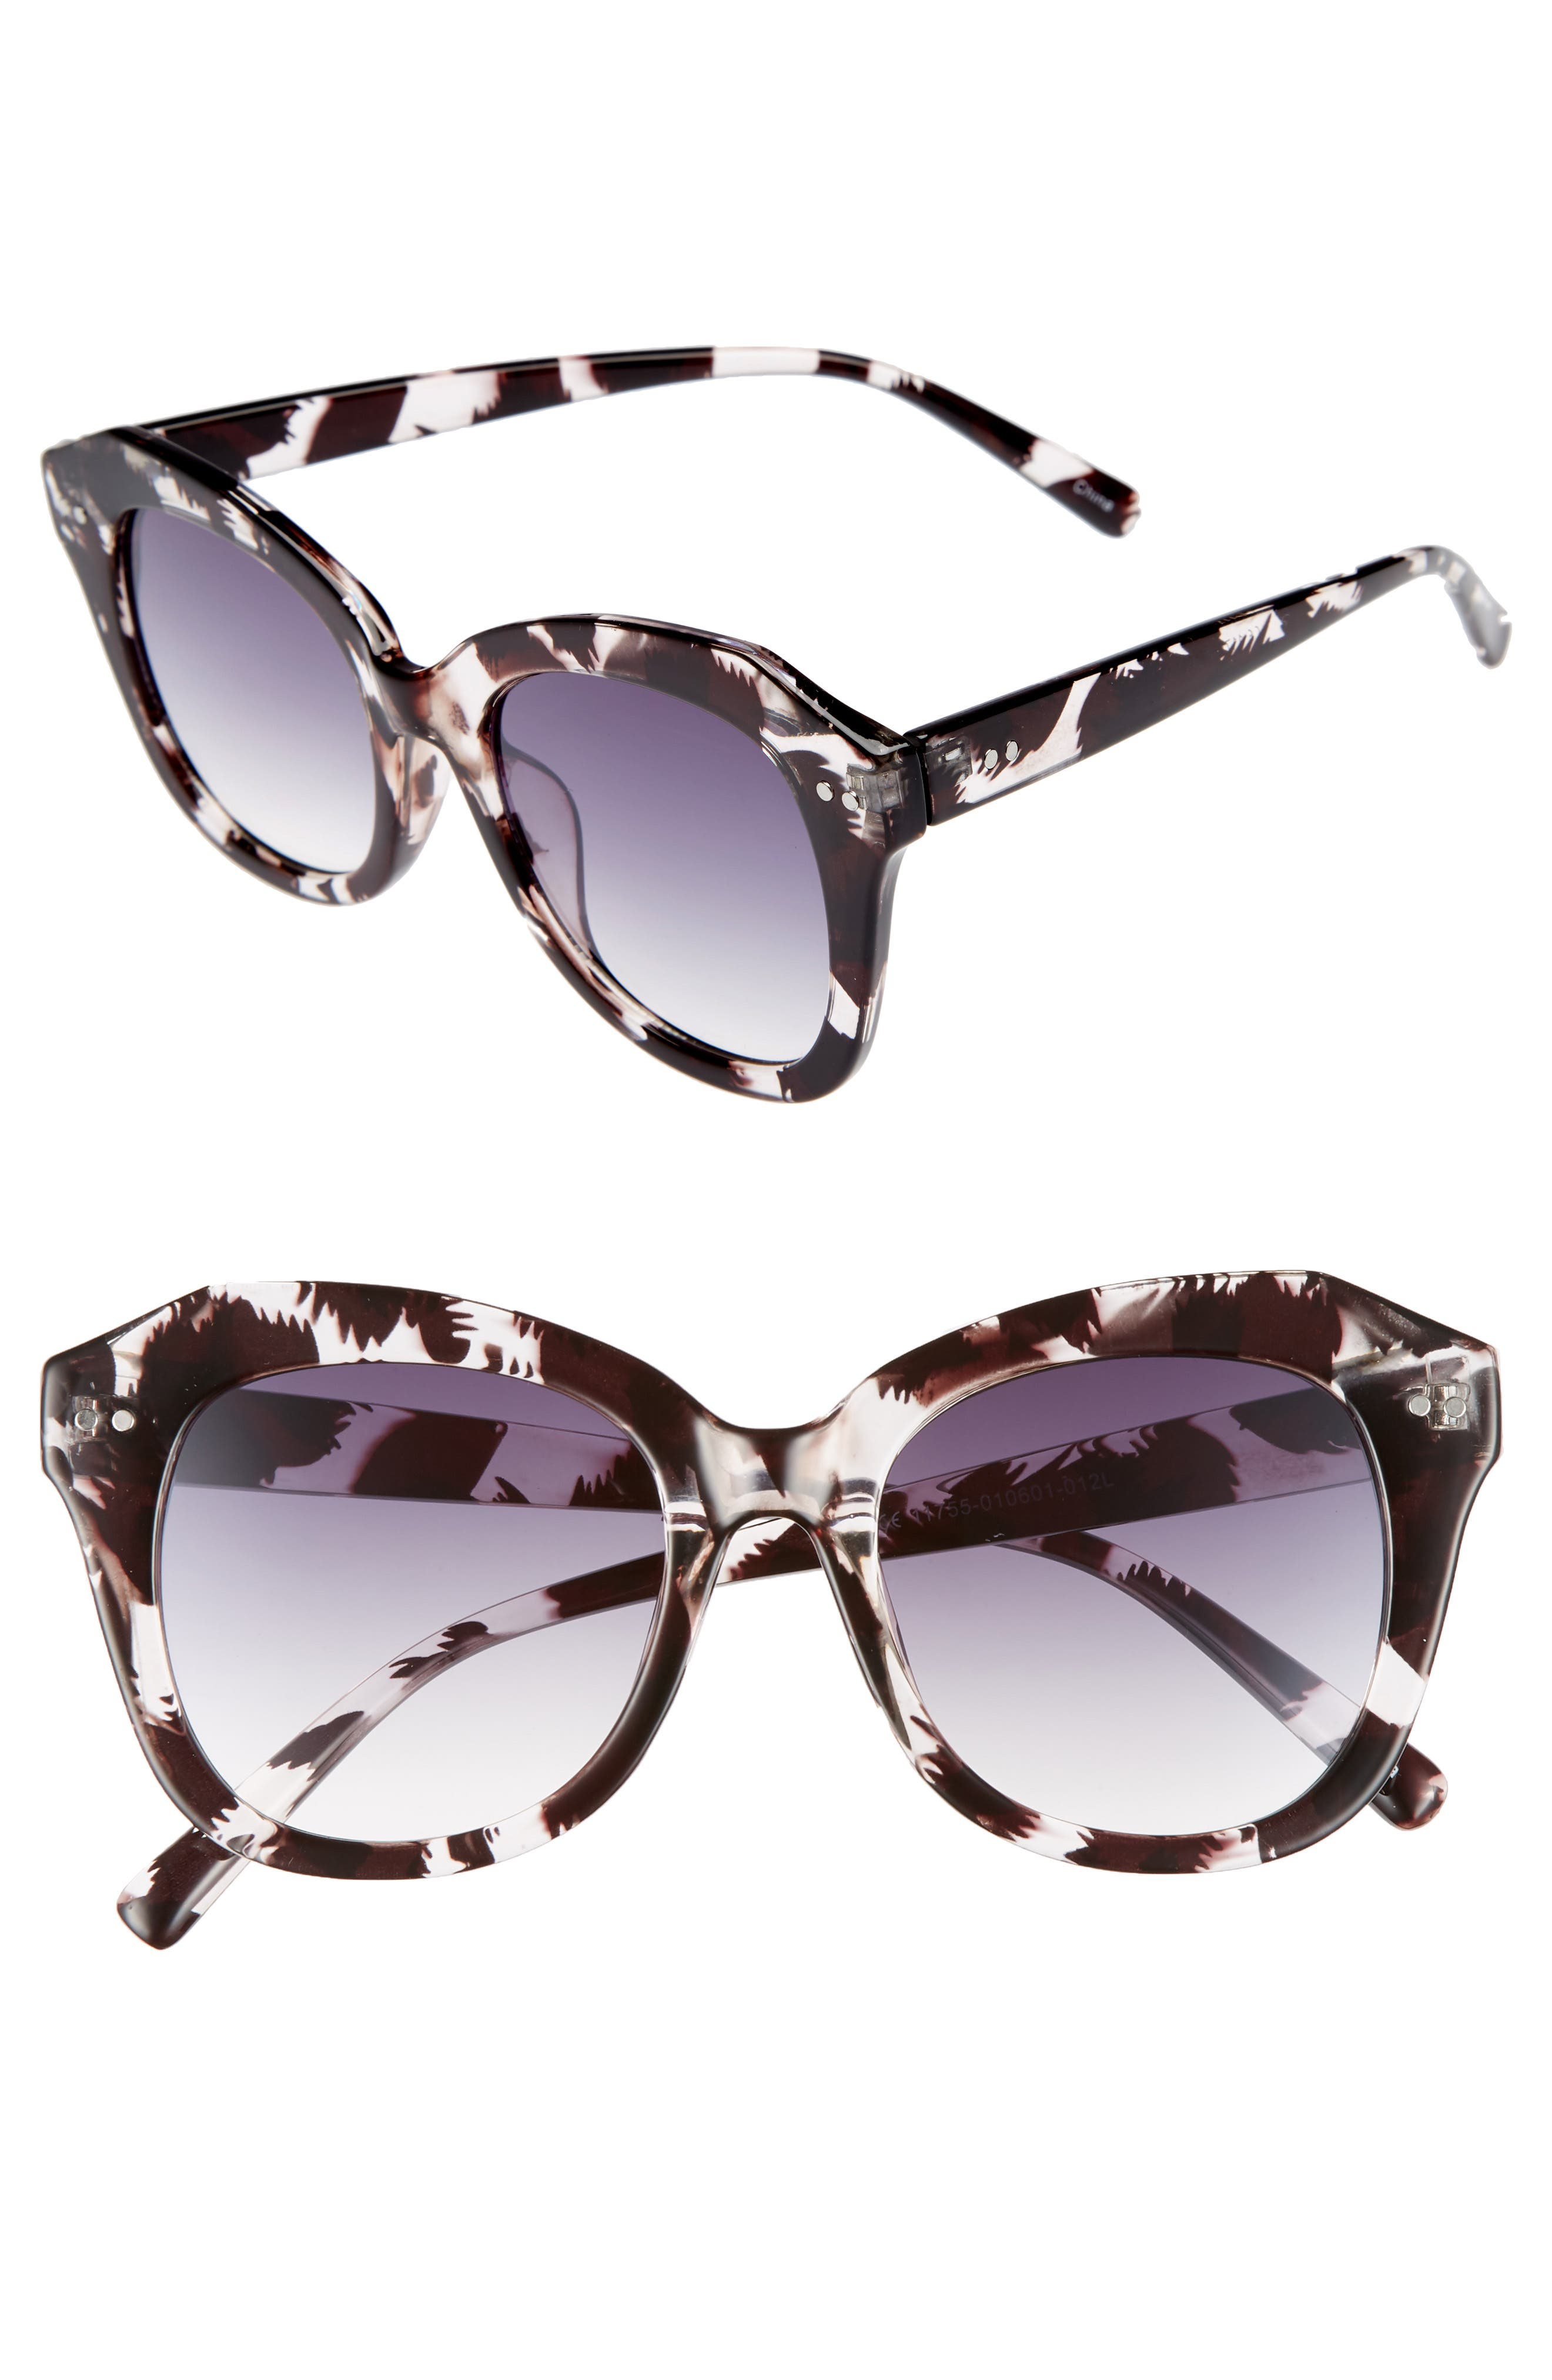 Marbled Square Sunglasses,                         Main,                         color, Black/ Clear